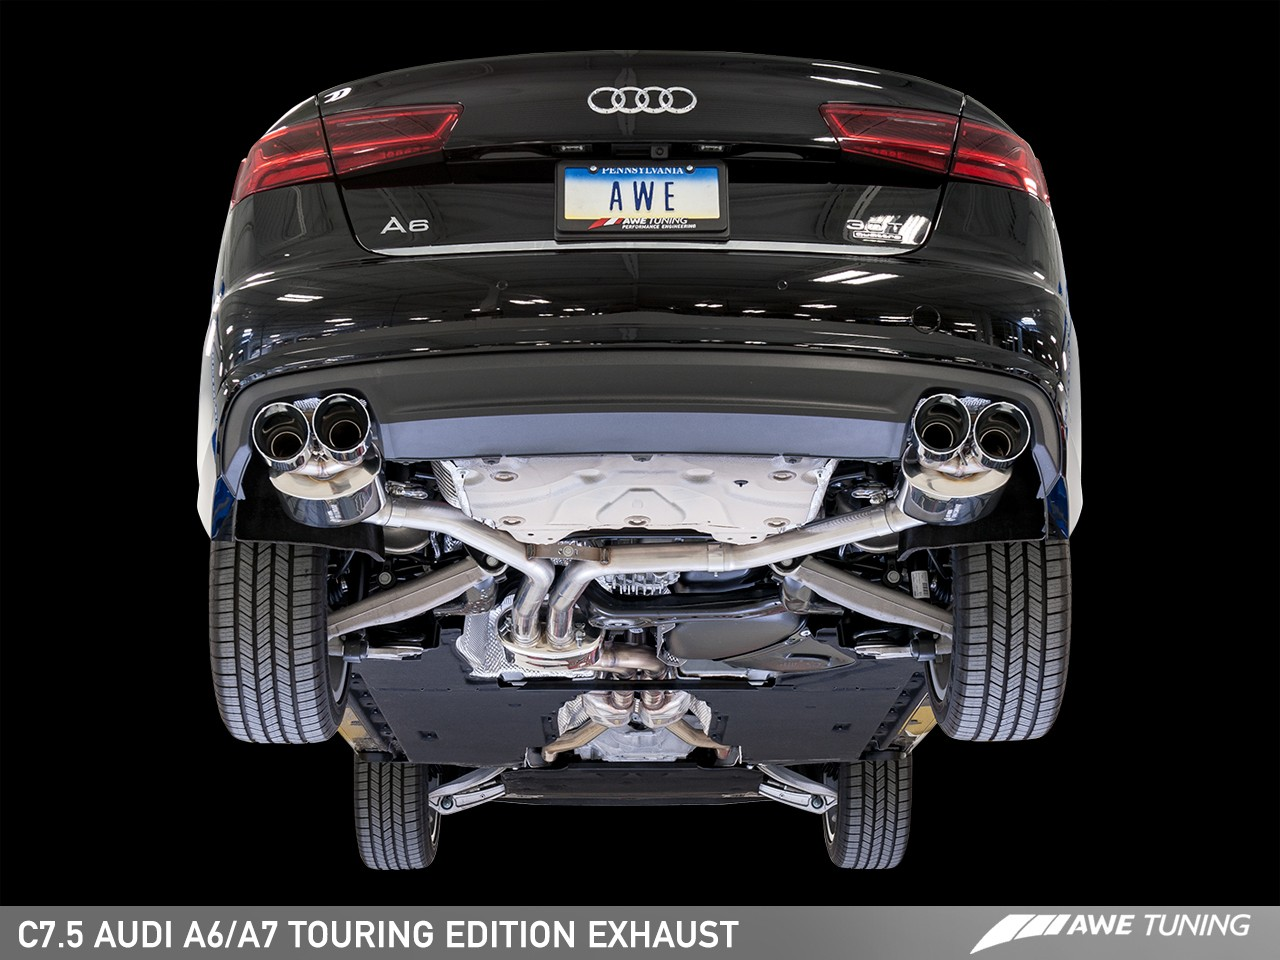 Awe Tuning Audi C7 5 A6 Touring Edition Exhaust Suite Awe